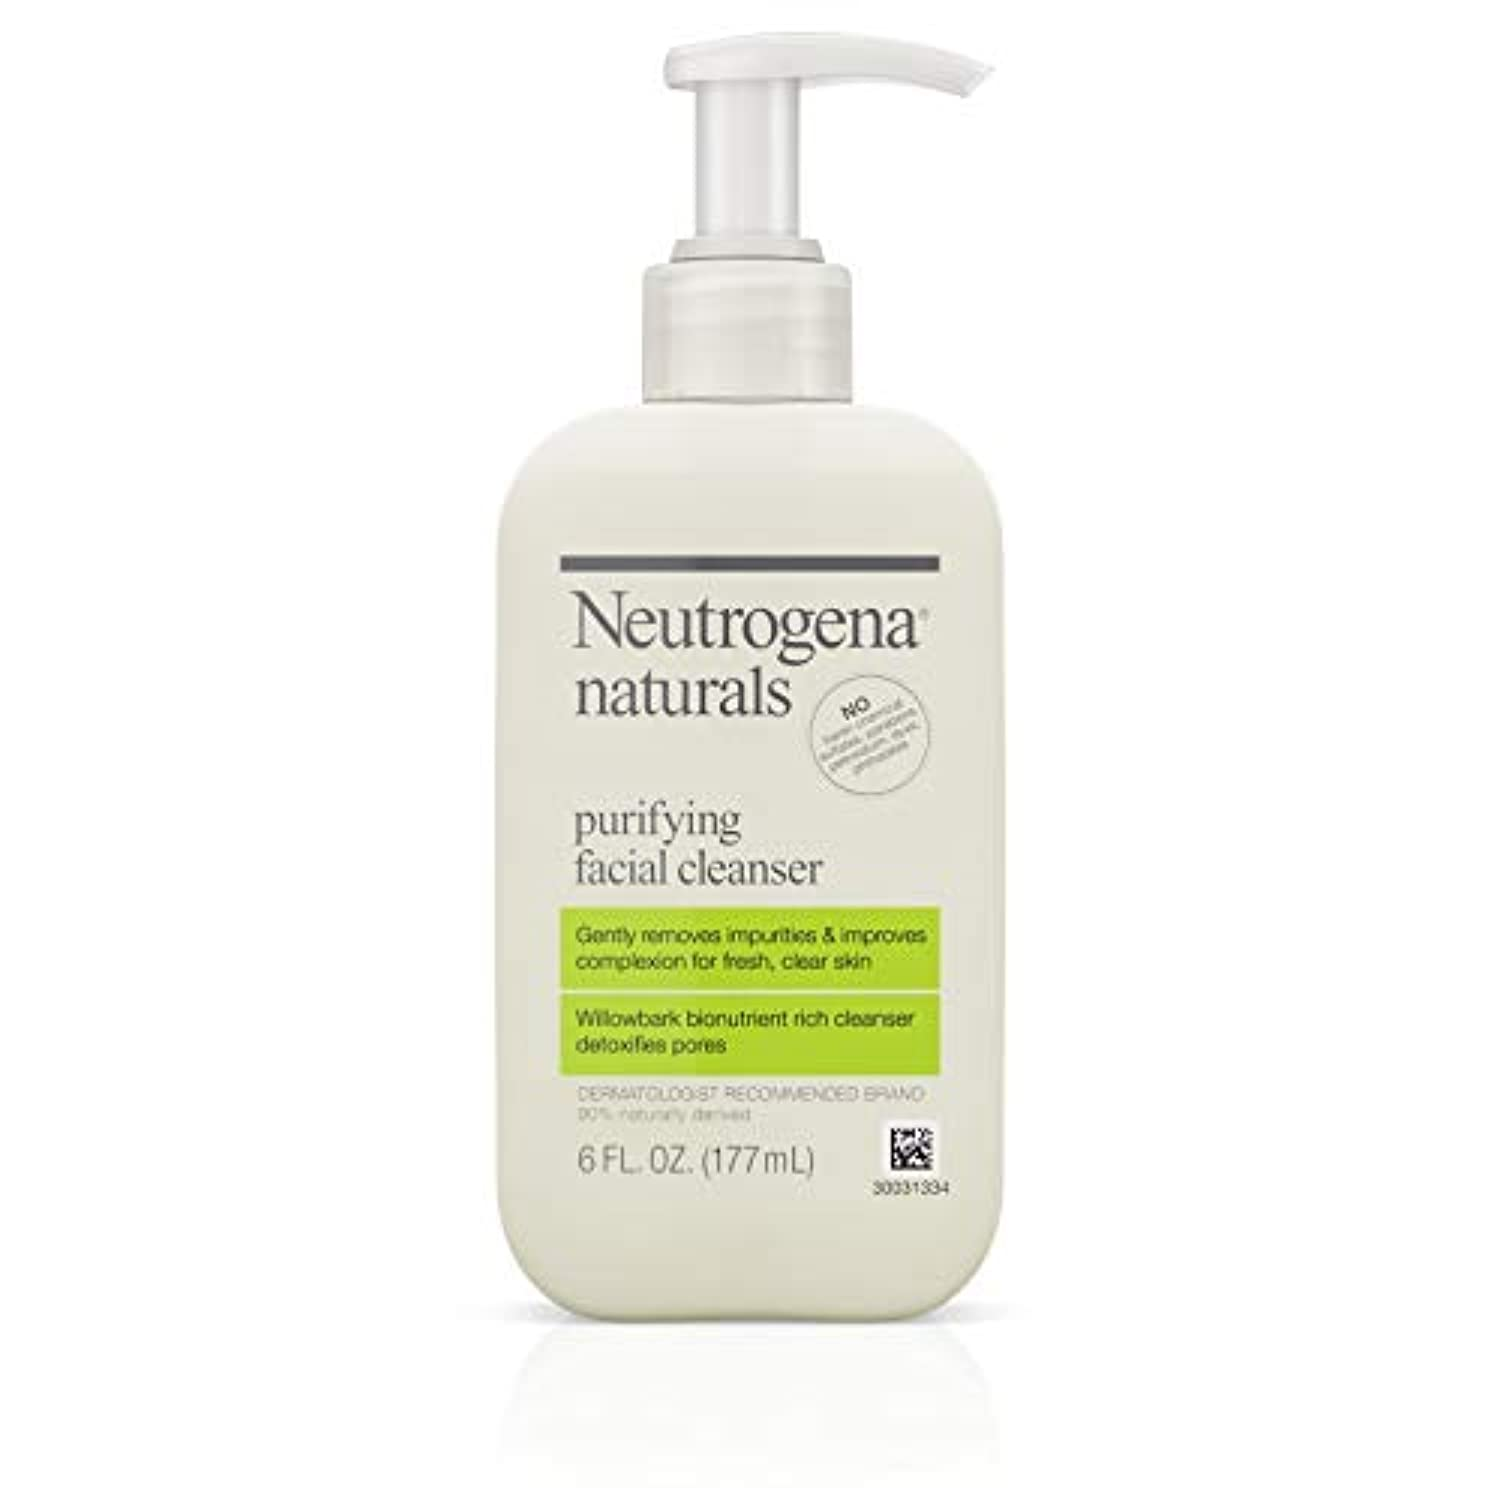 Neutrogena Naturals Purifying Facial Cleanser 175 ml (並行輸入品)